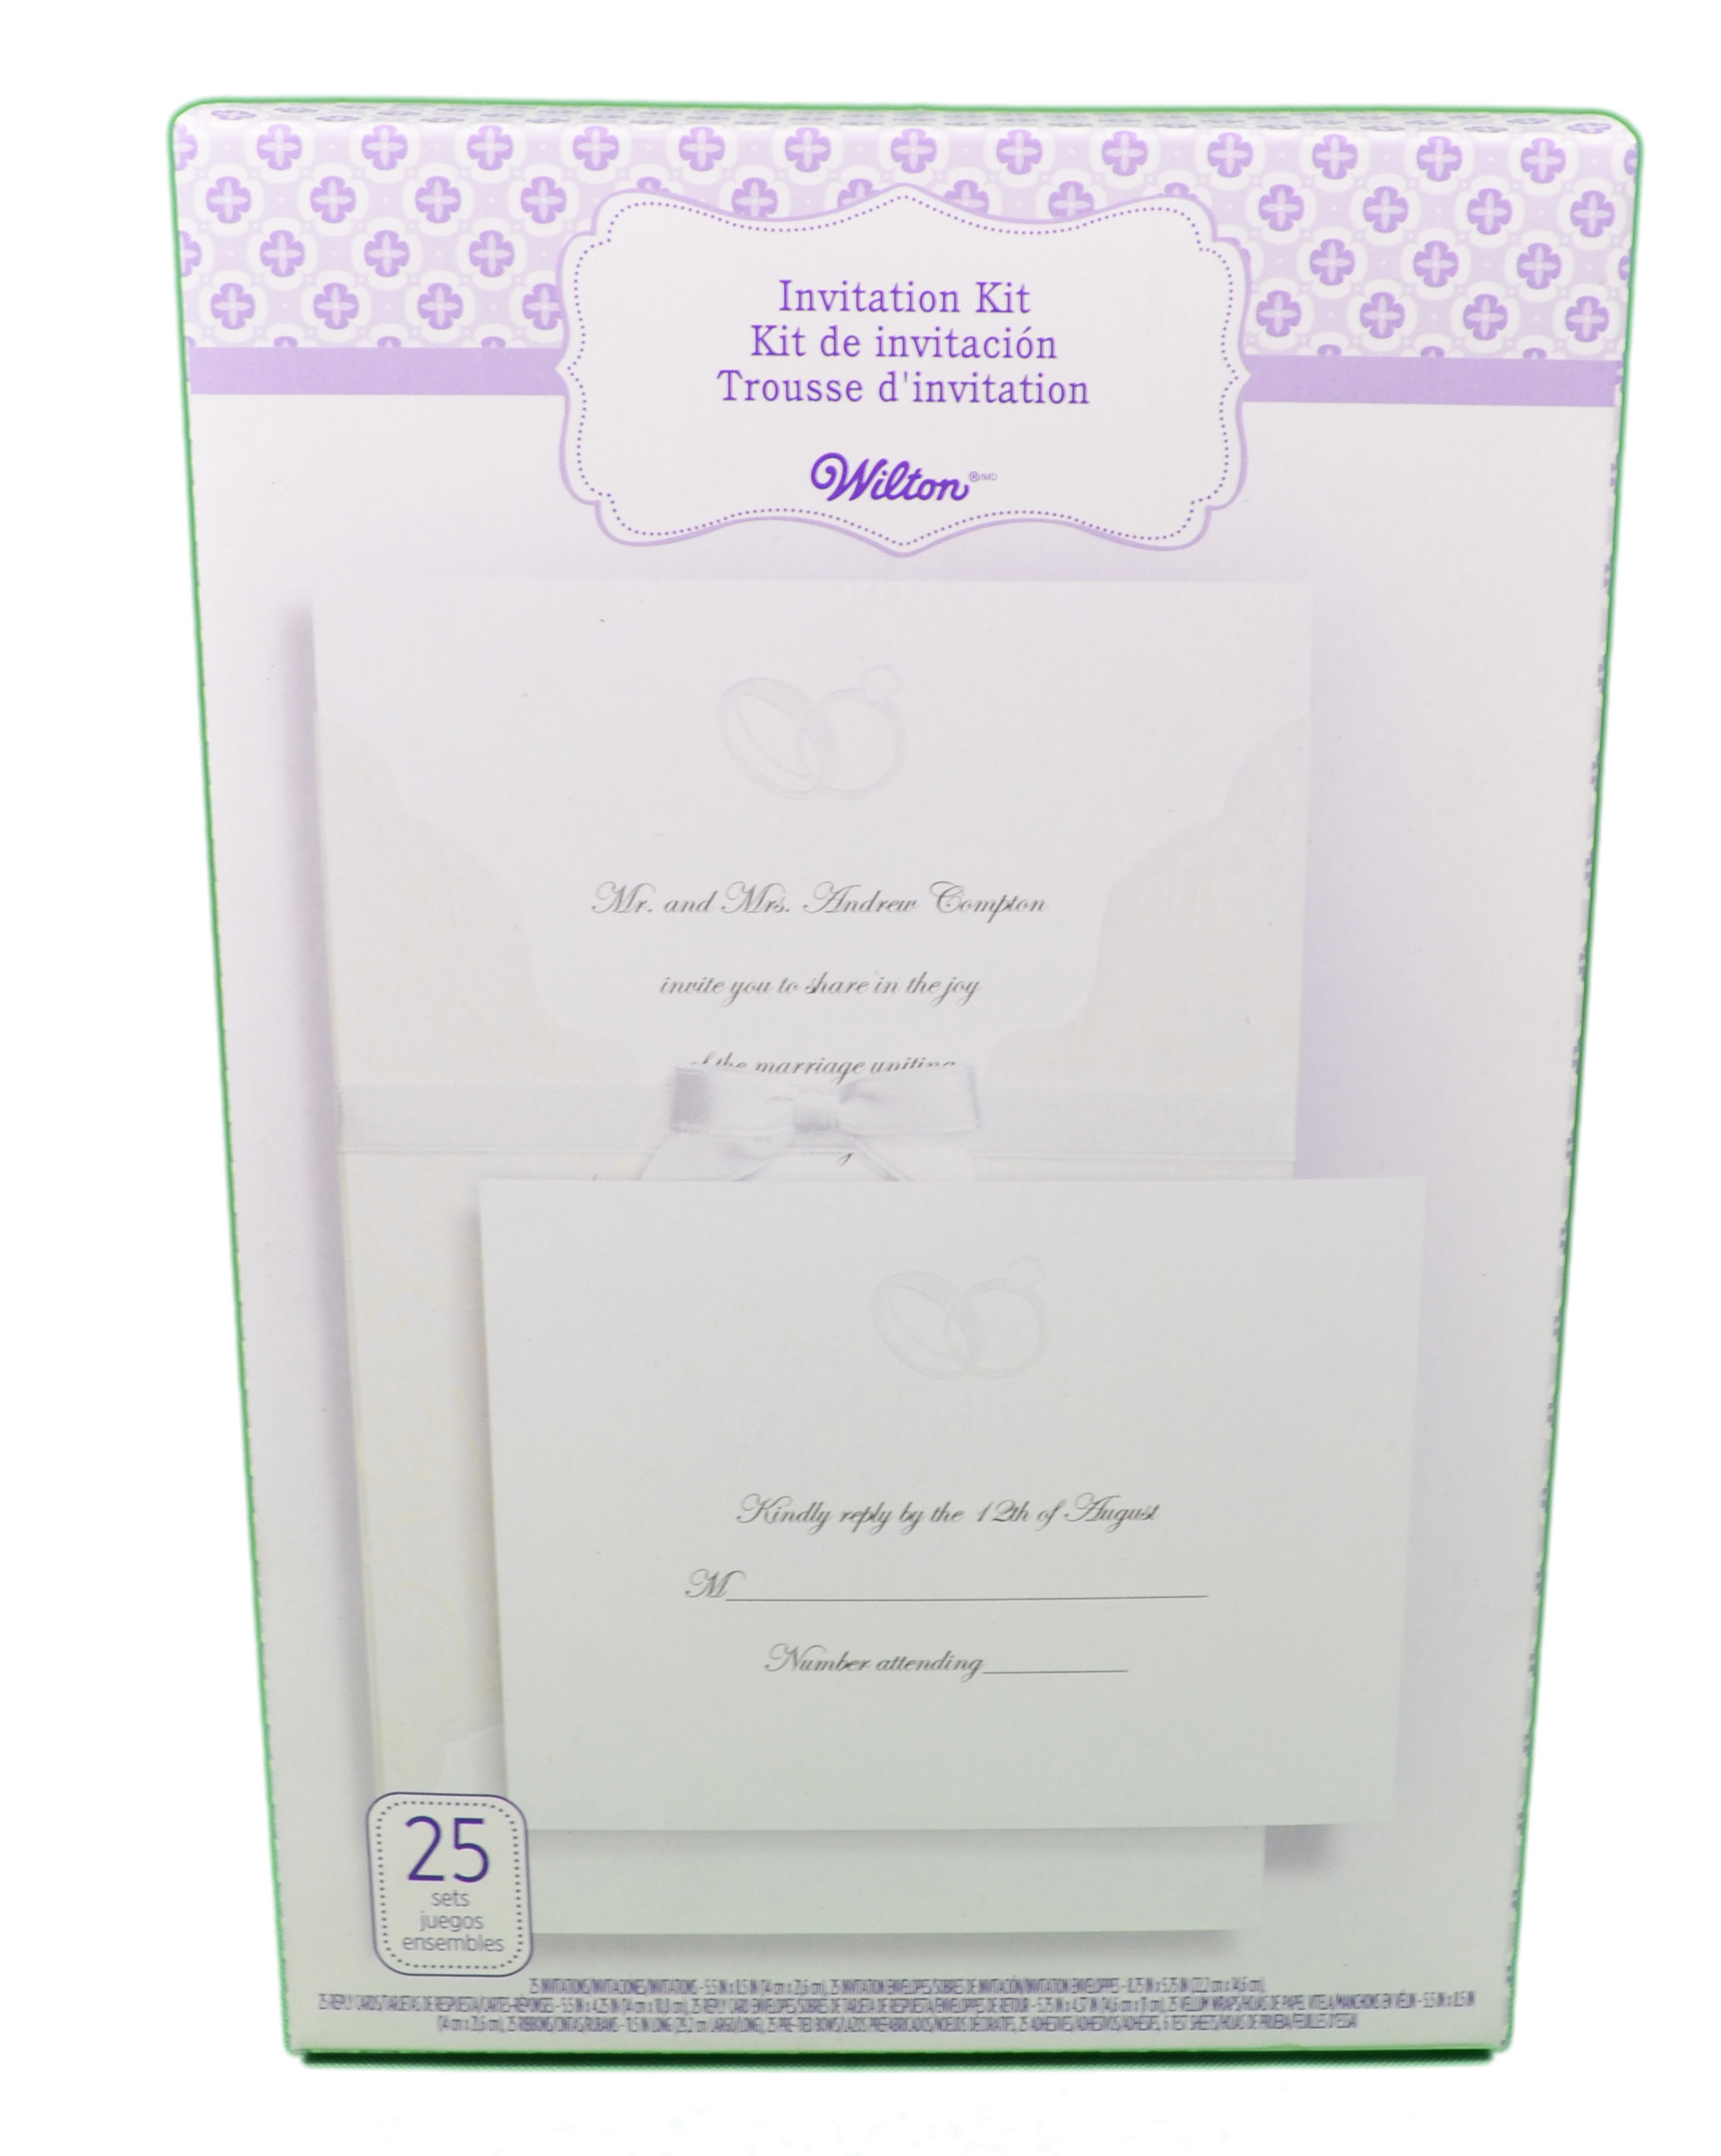 Wilton wedding invitation kit embellished rings 25 count for Www wiltonprint com templates